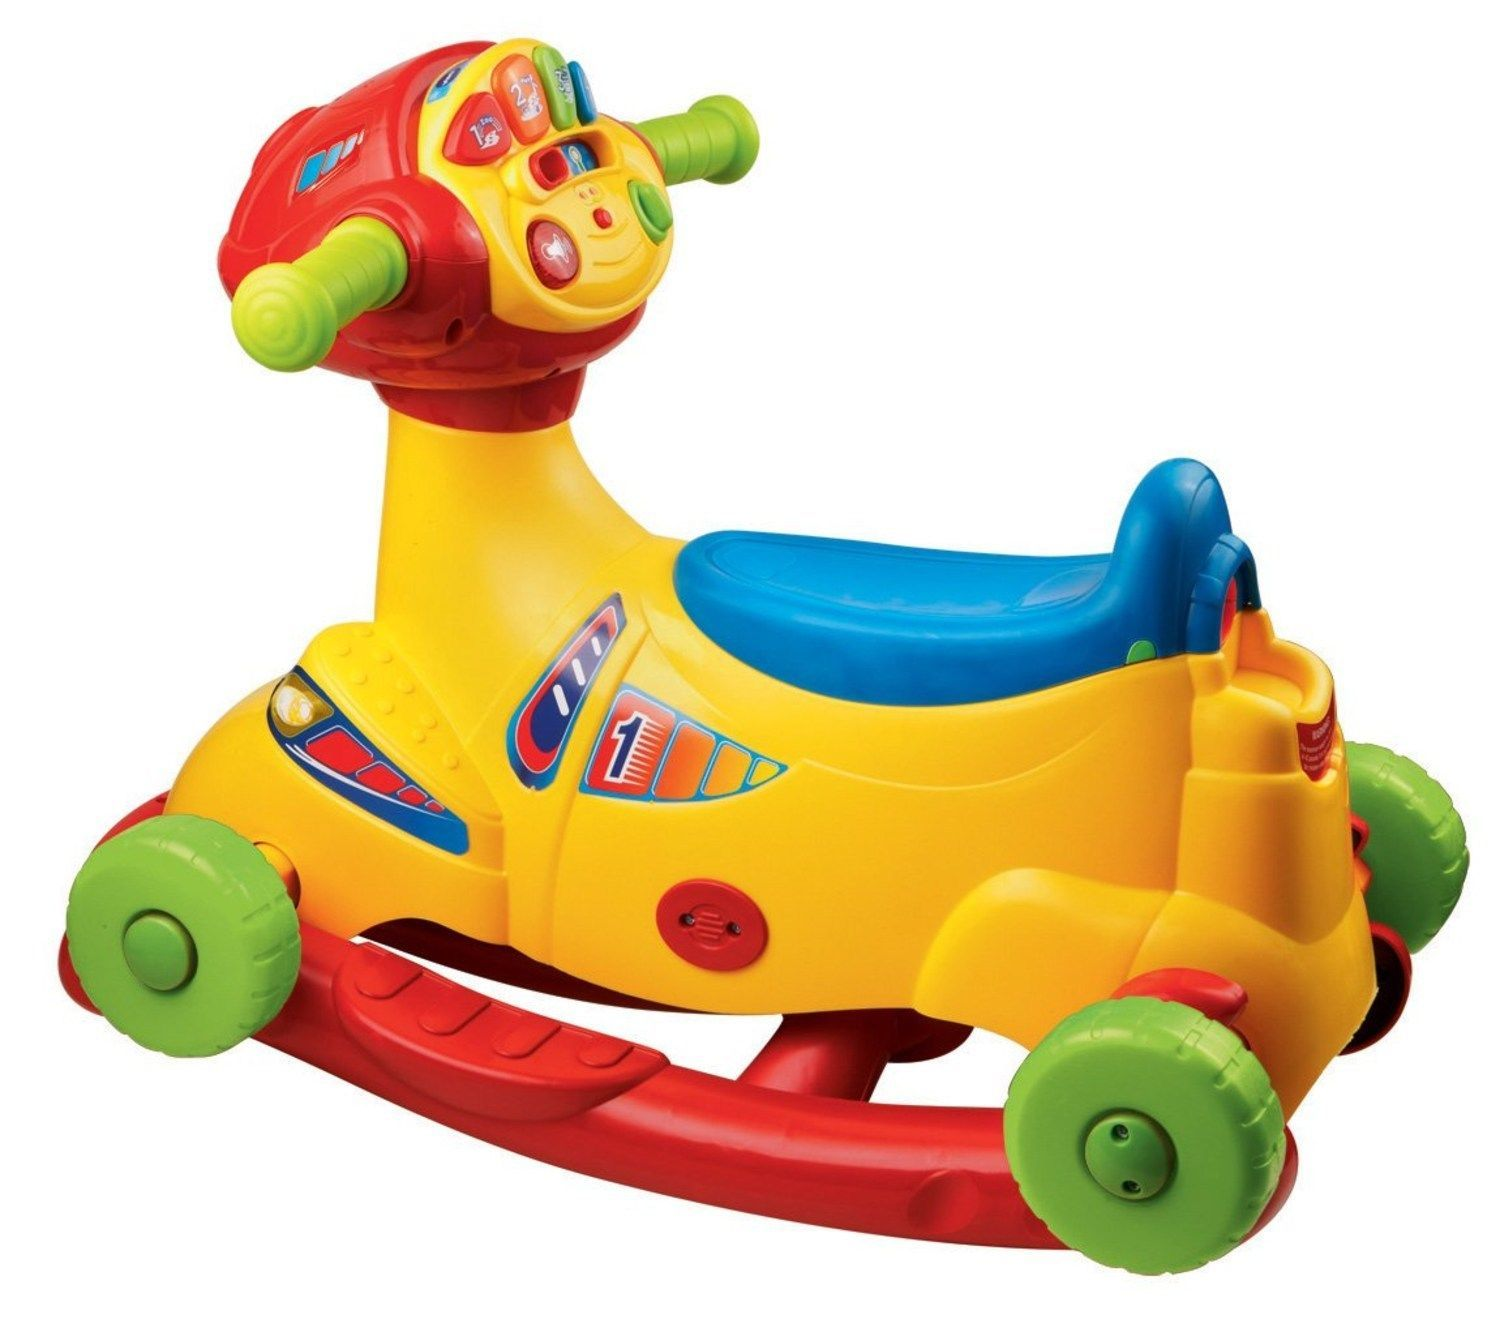 Riding Toys Age 5 : Vtech sit to race smart wheels ride on for sale item